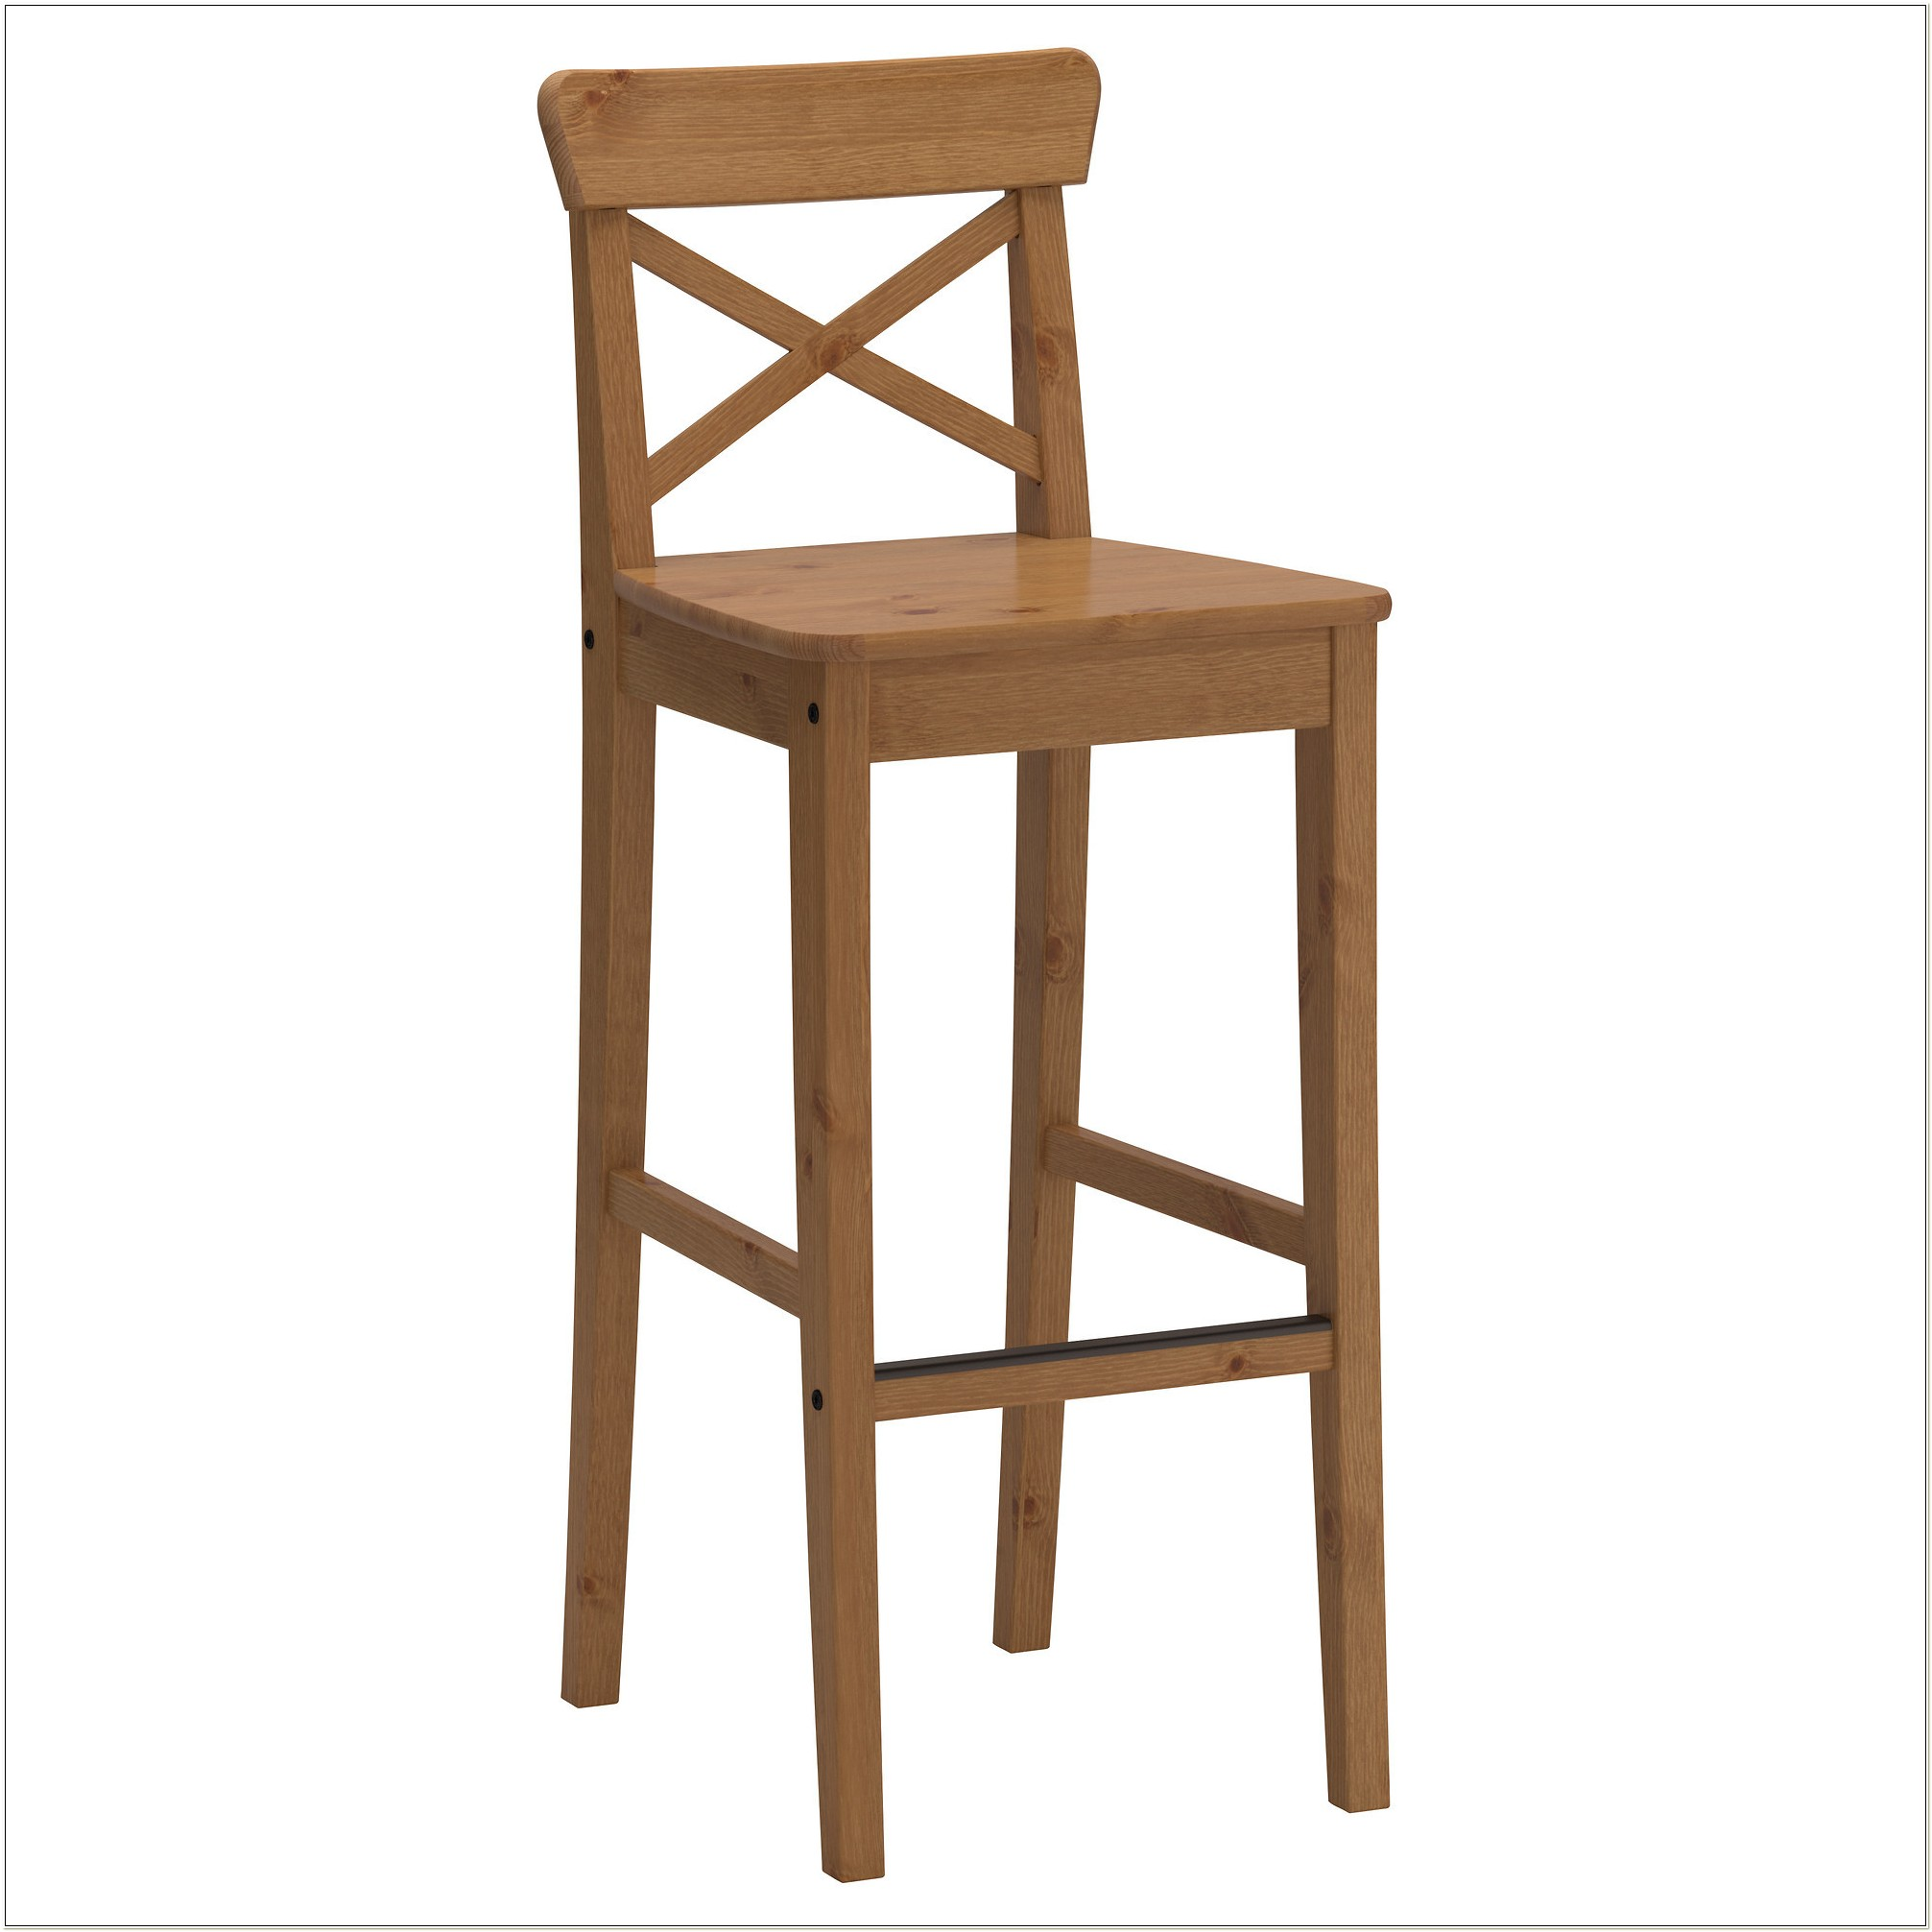 Ikea Wooden Breakfast Bar Stools